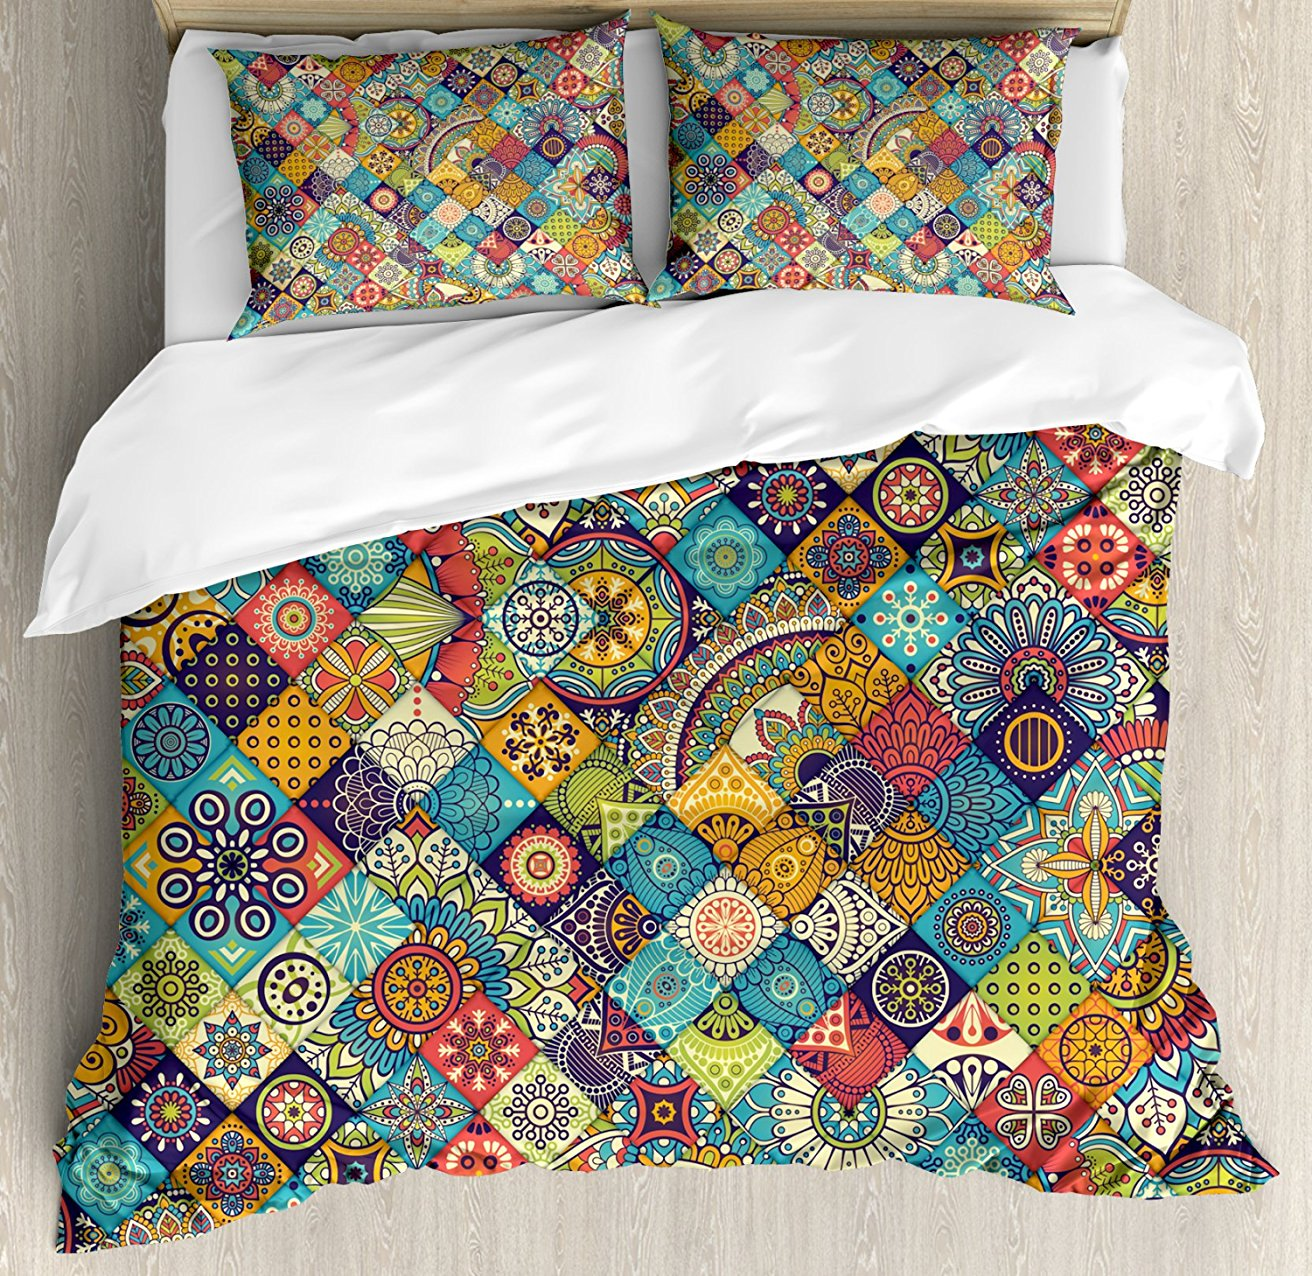 Bohemian Duvet Cover Set  Checkered Pattern With Ethnic Ornamental Floral Figures Ethnic Folk Art Abstract  4 Piece Bedding Set